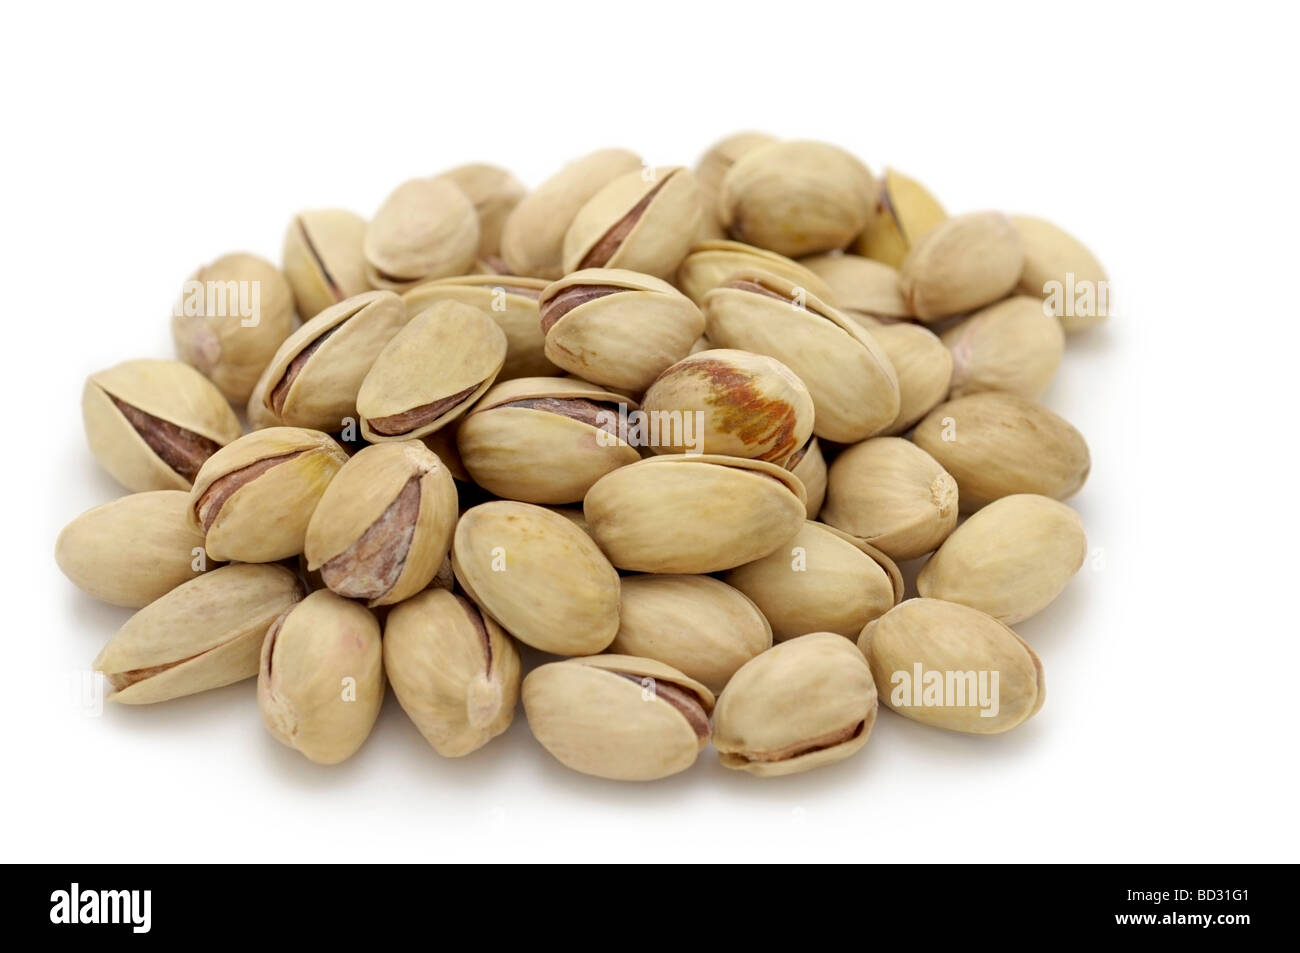 Small mound of Pistachio Nuts - Stock Image